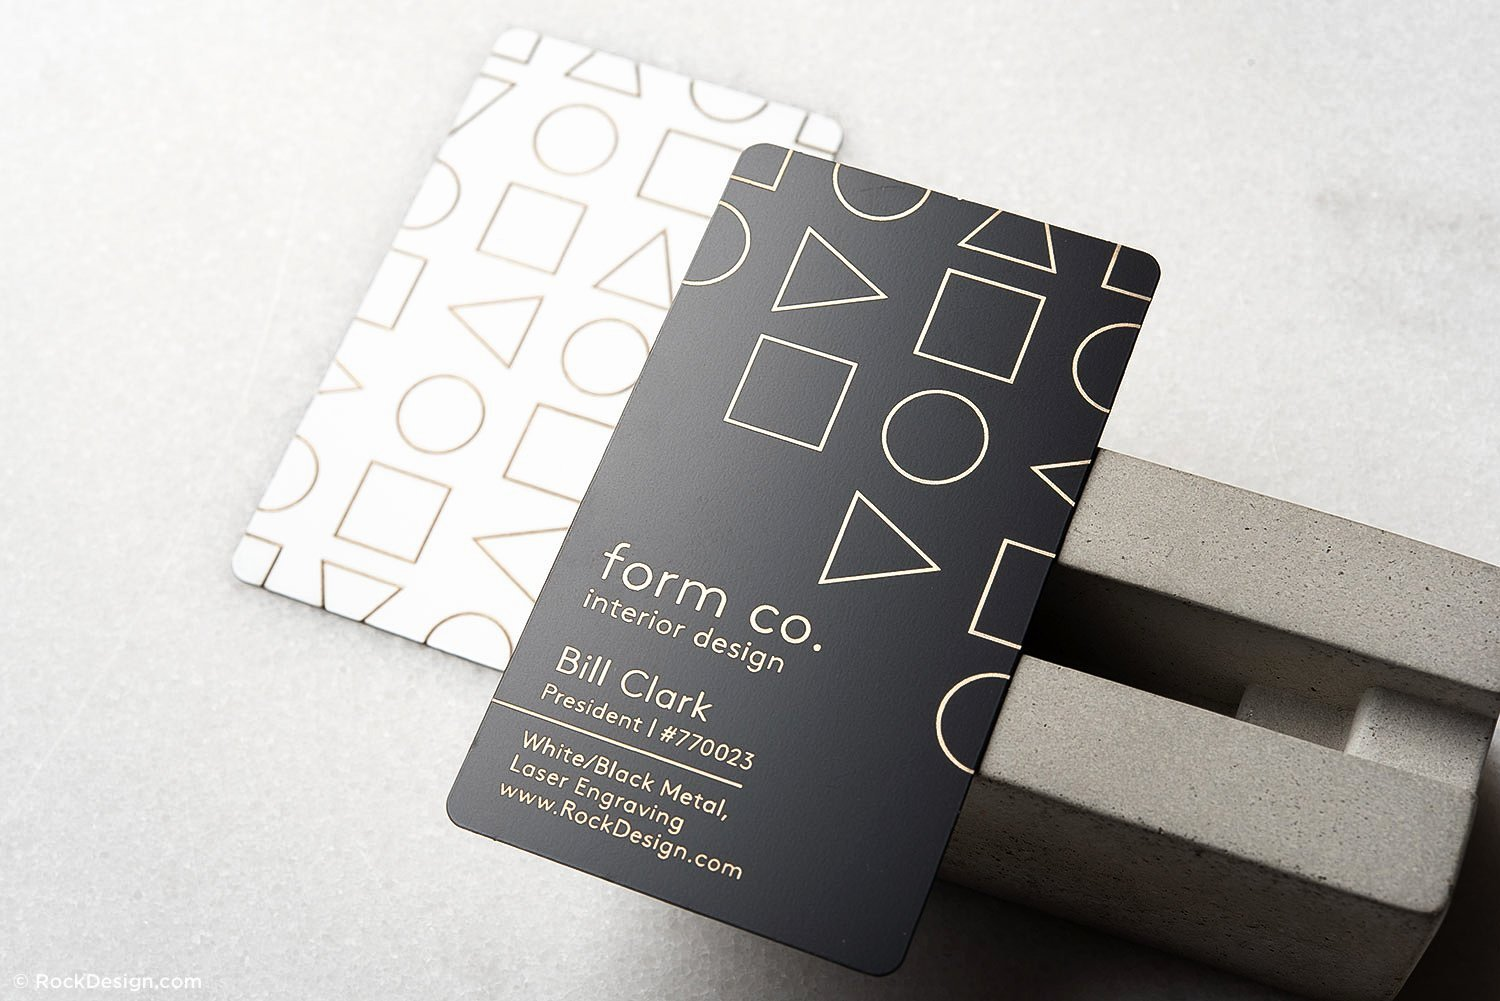 Interior Design Business Cards Inspirational Simple and Clean Interior Design Quick Metal Business Card